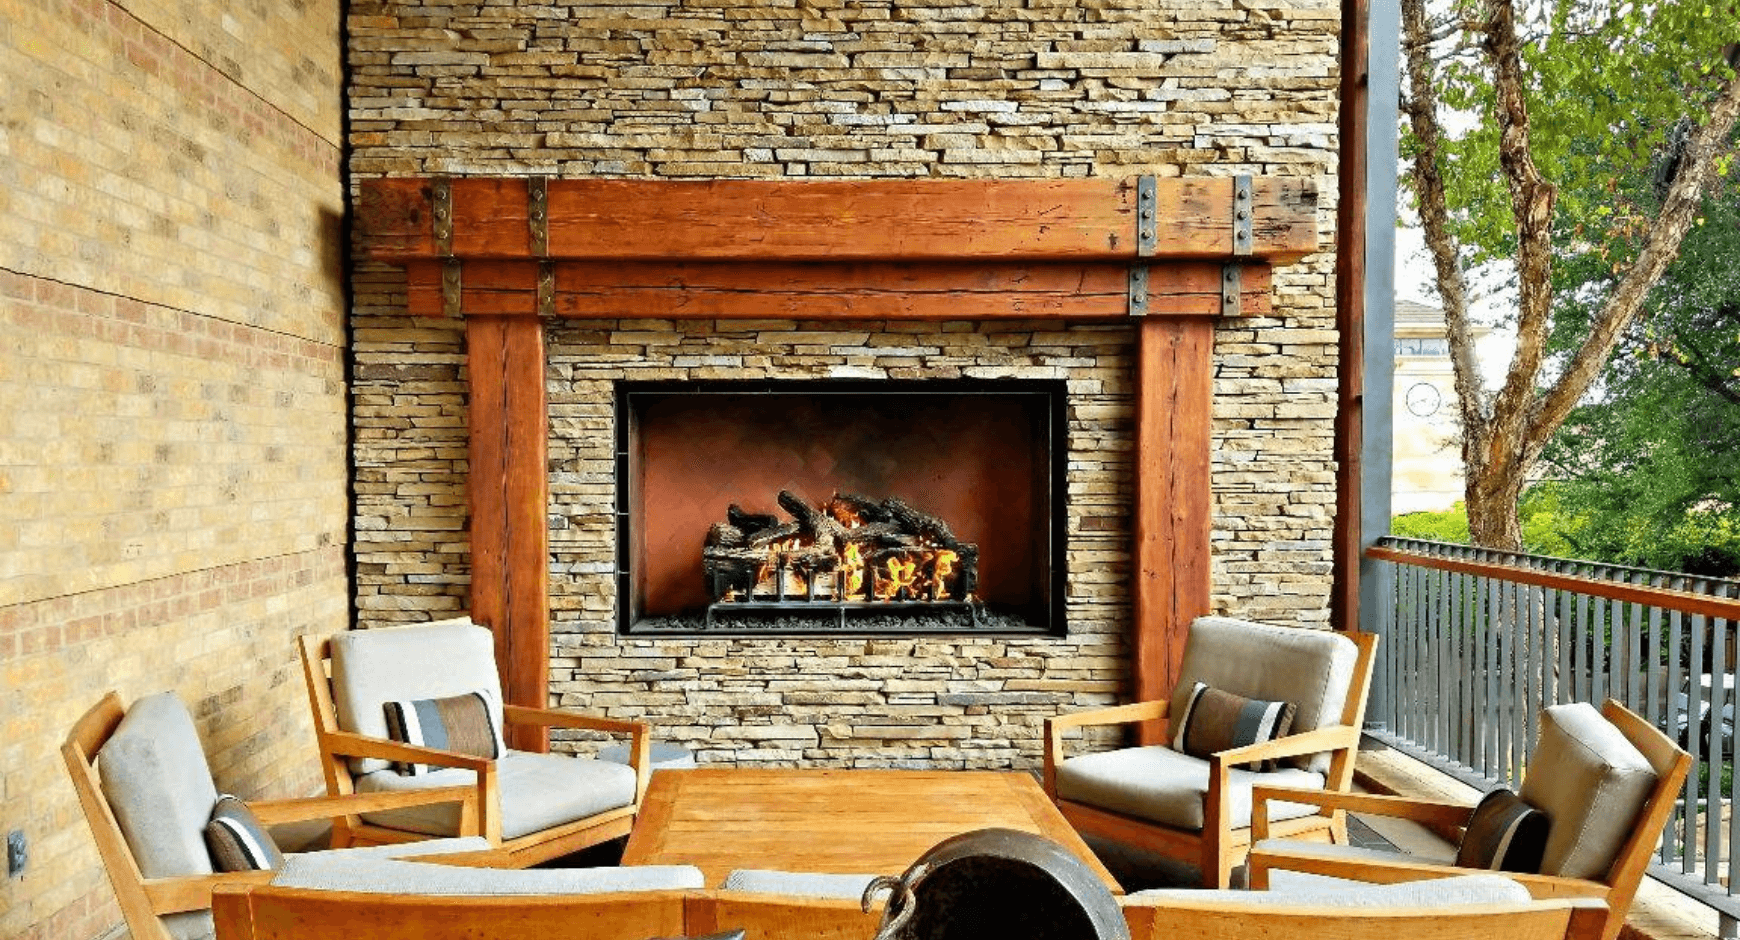 Stacked stone veneer fireplace on a hotel deck gathering space